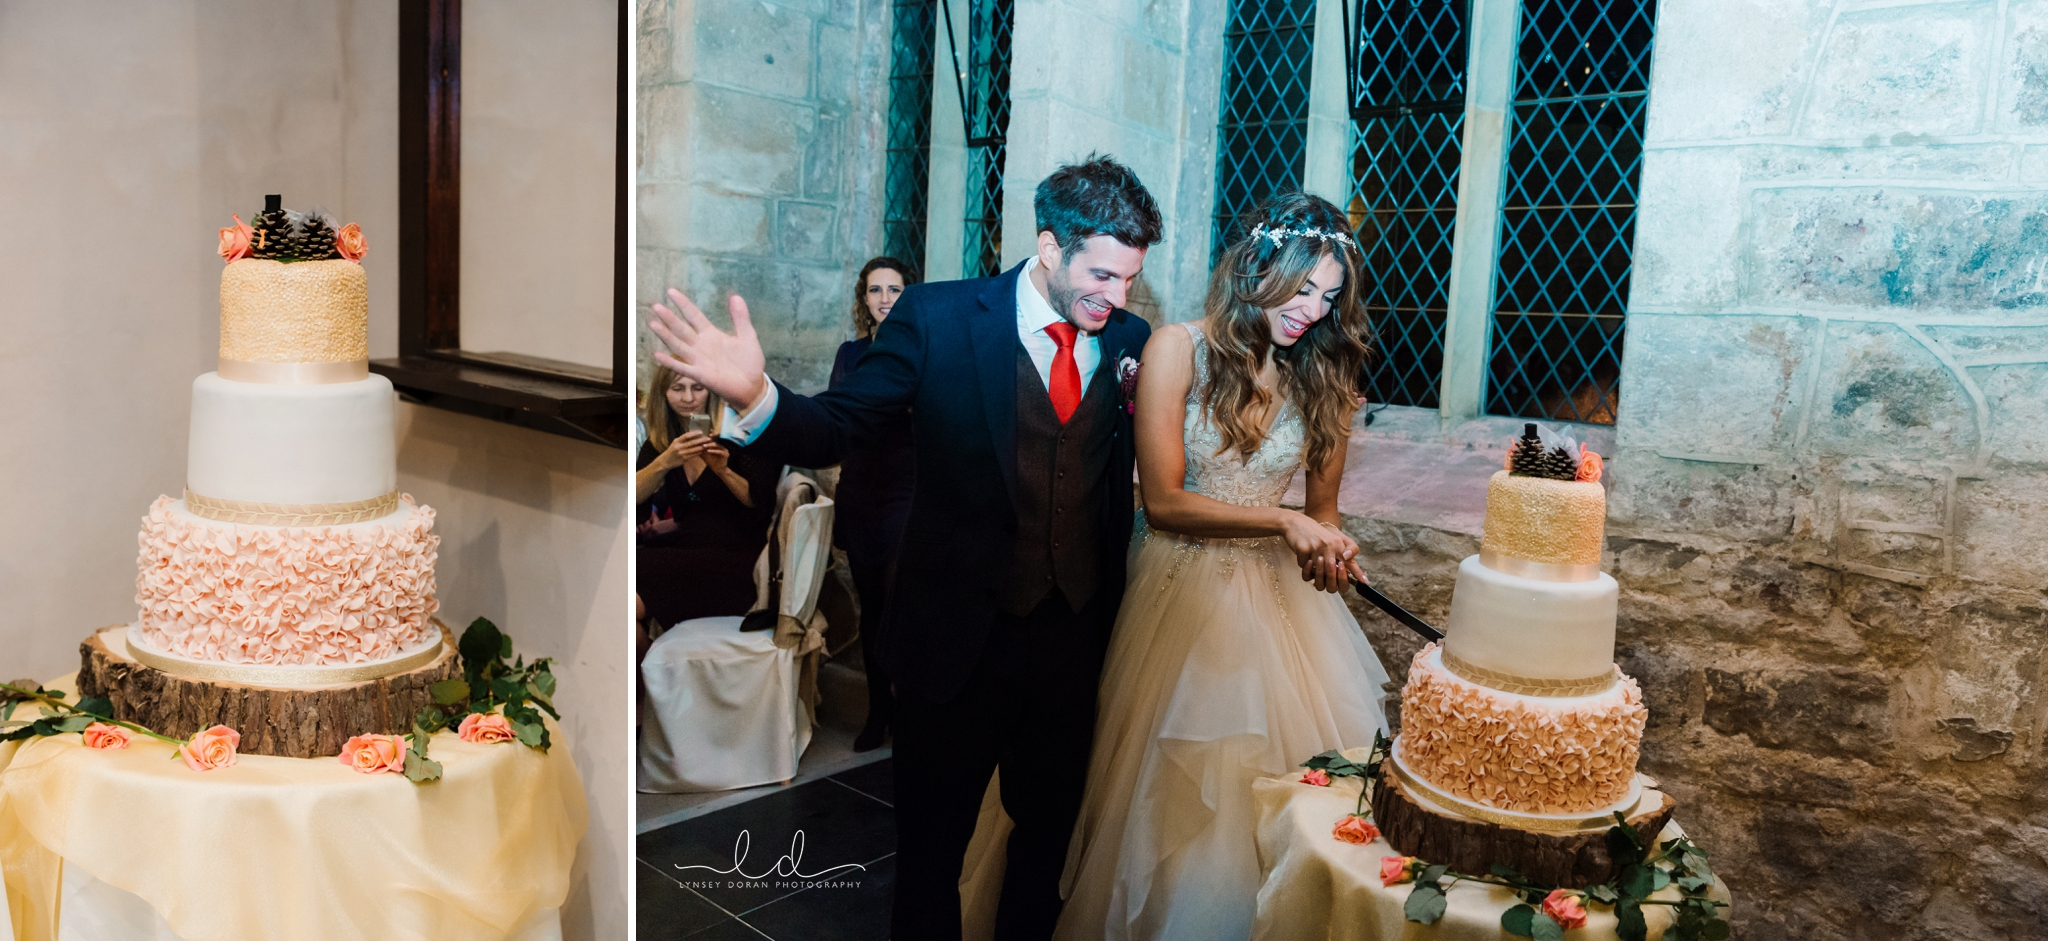 Rustic Wedding Photographers Yorkshire | Boho wedding photographers Yorkshire_0034